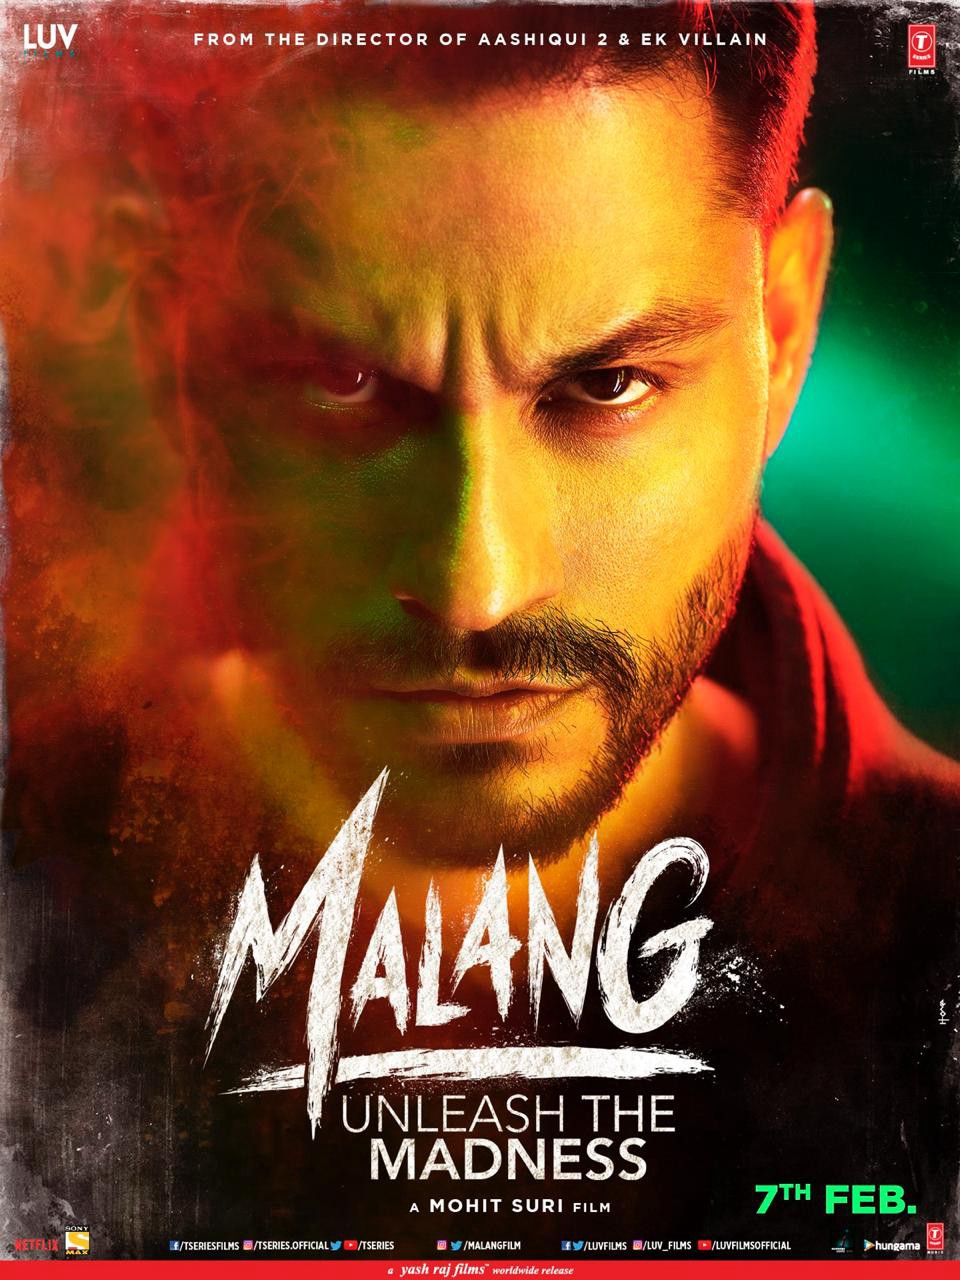 Malang Poster And Look Revealed By Ff Network By Filmi Files Medium